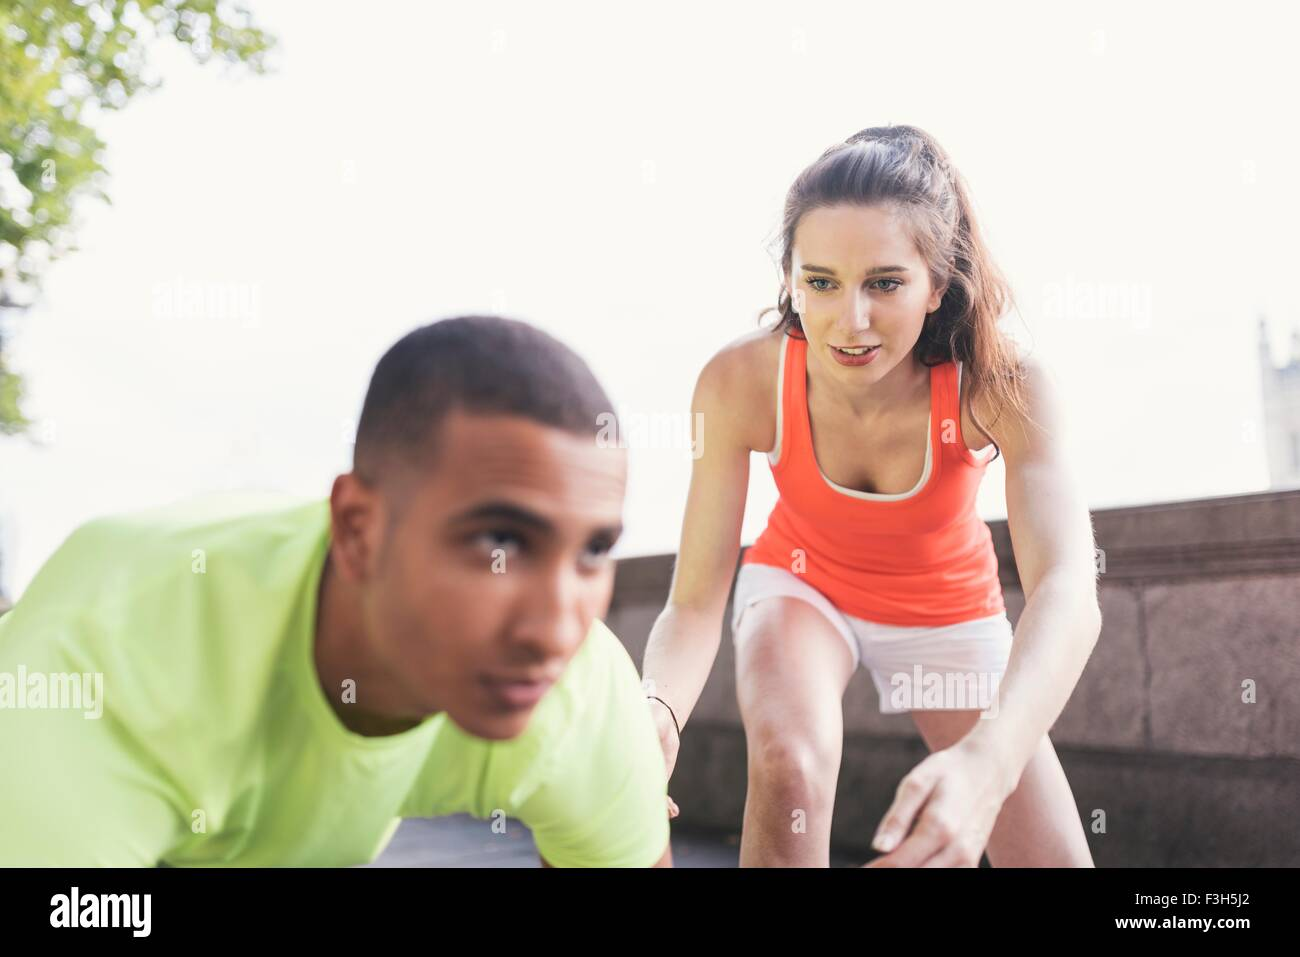 Young female trainer practicing starts with male runner - Stock Image